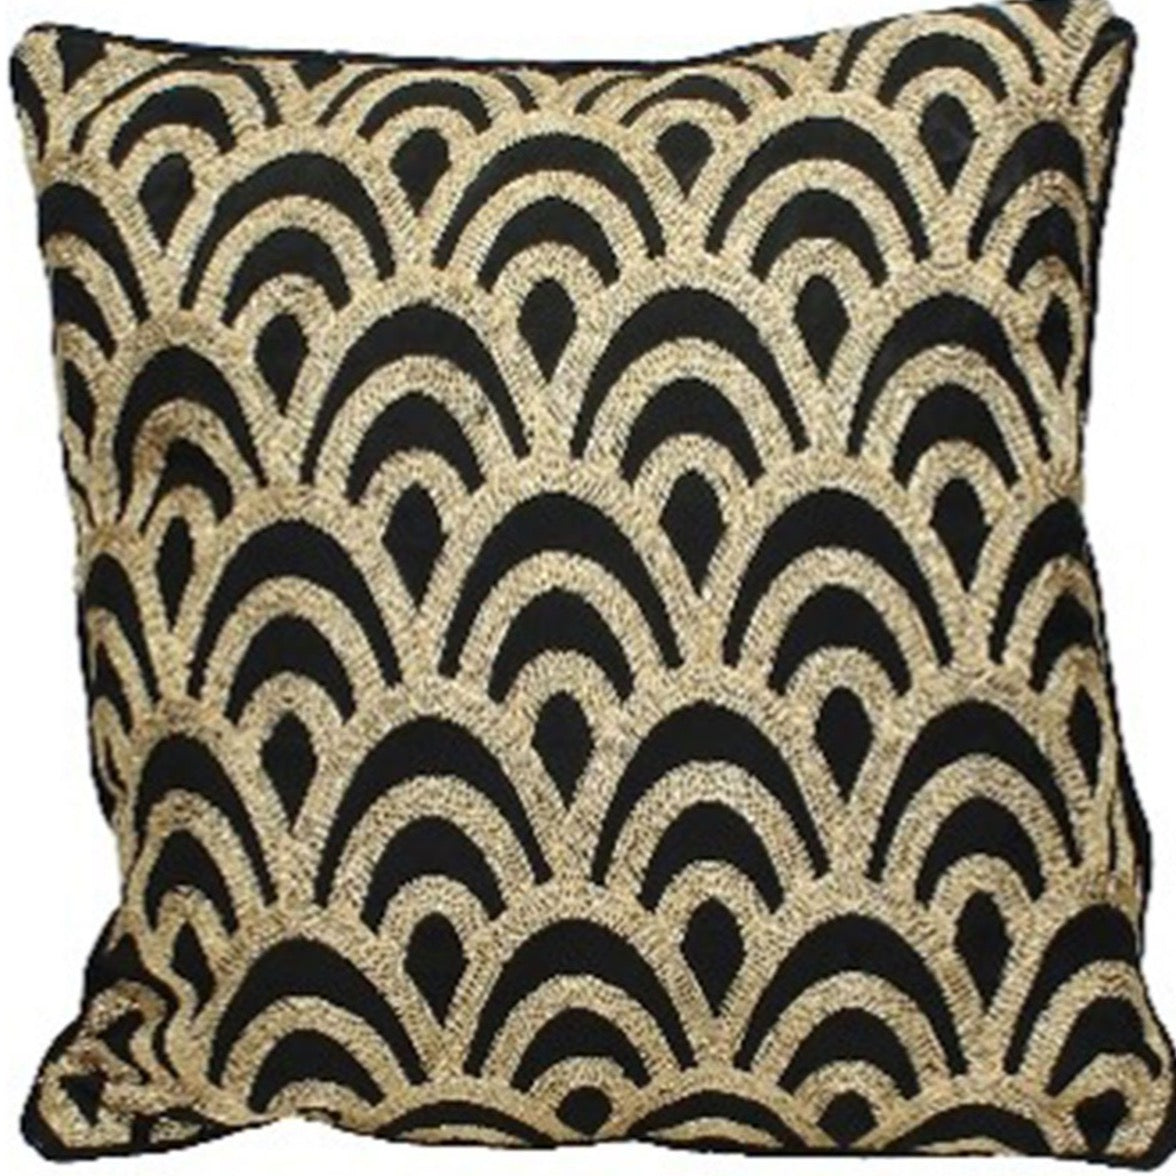 Deco Scalloped Cushion in Black